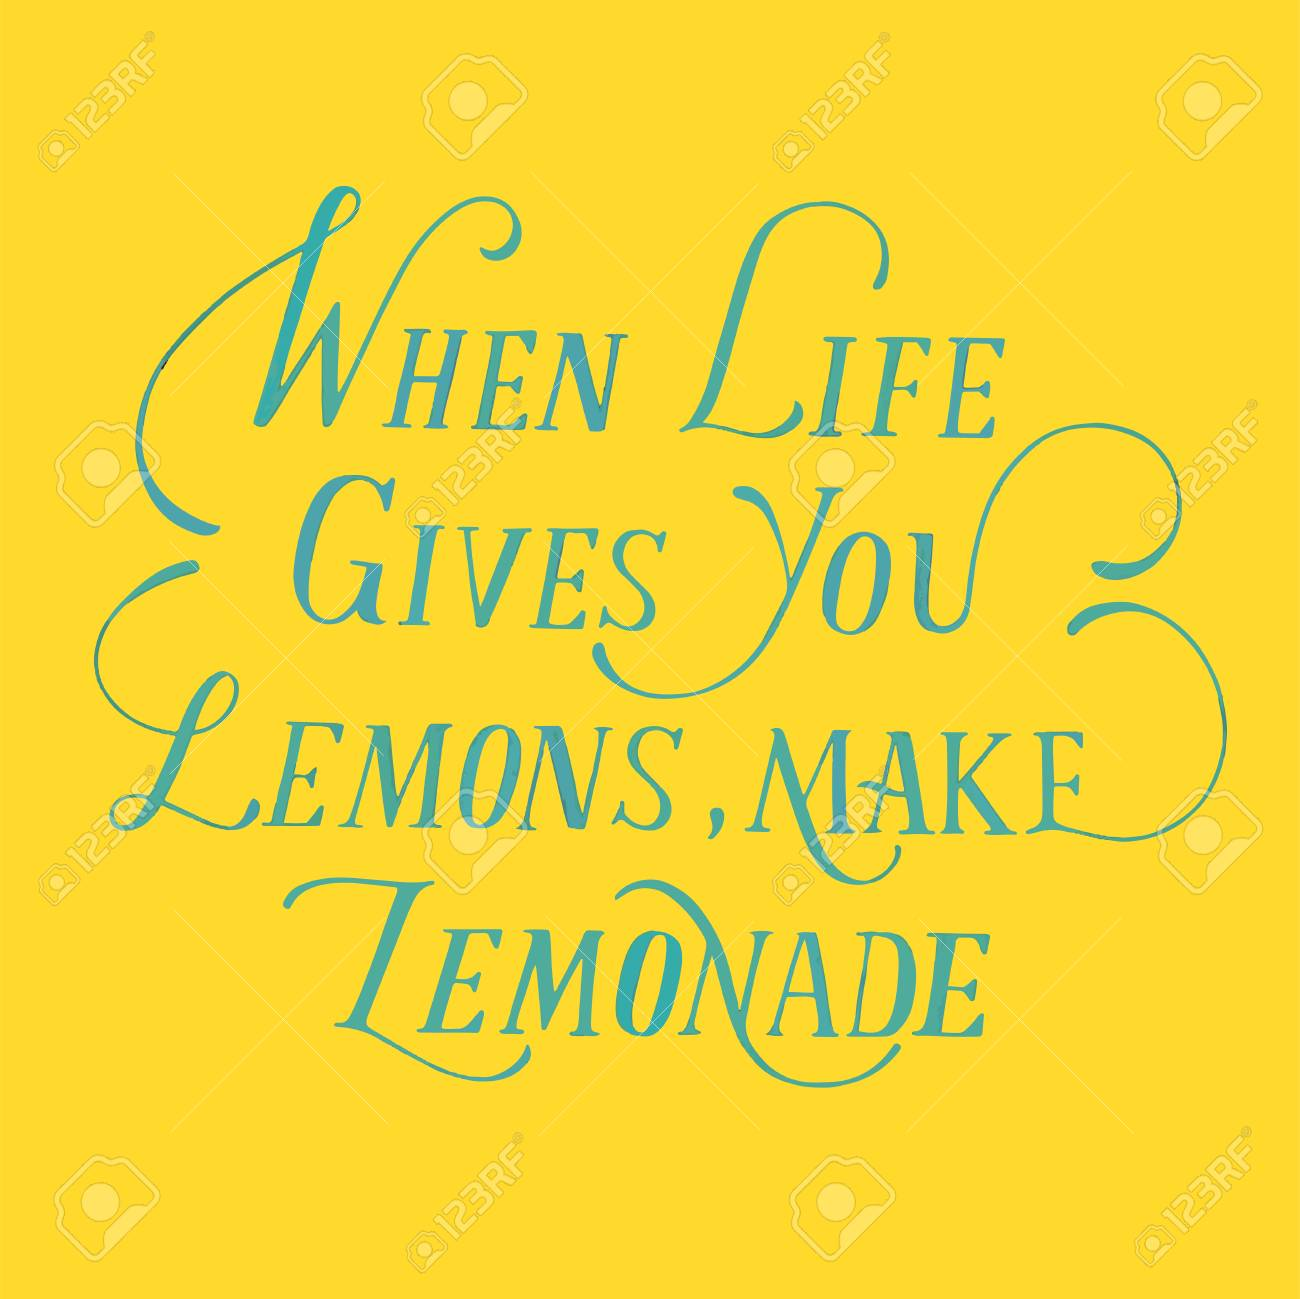 When Life Gives You Lemons Make Lemonade Stock Photo Picture And Royalty Free Image Image 109644161